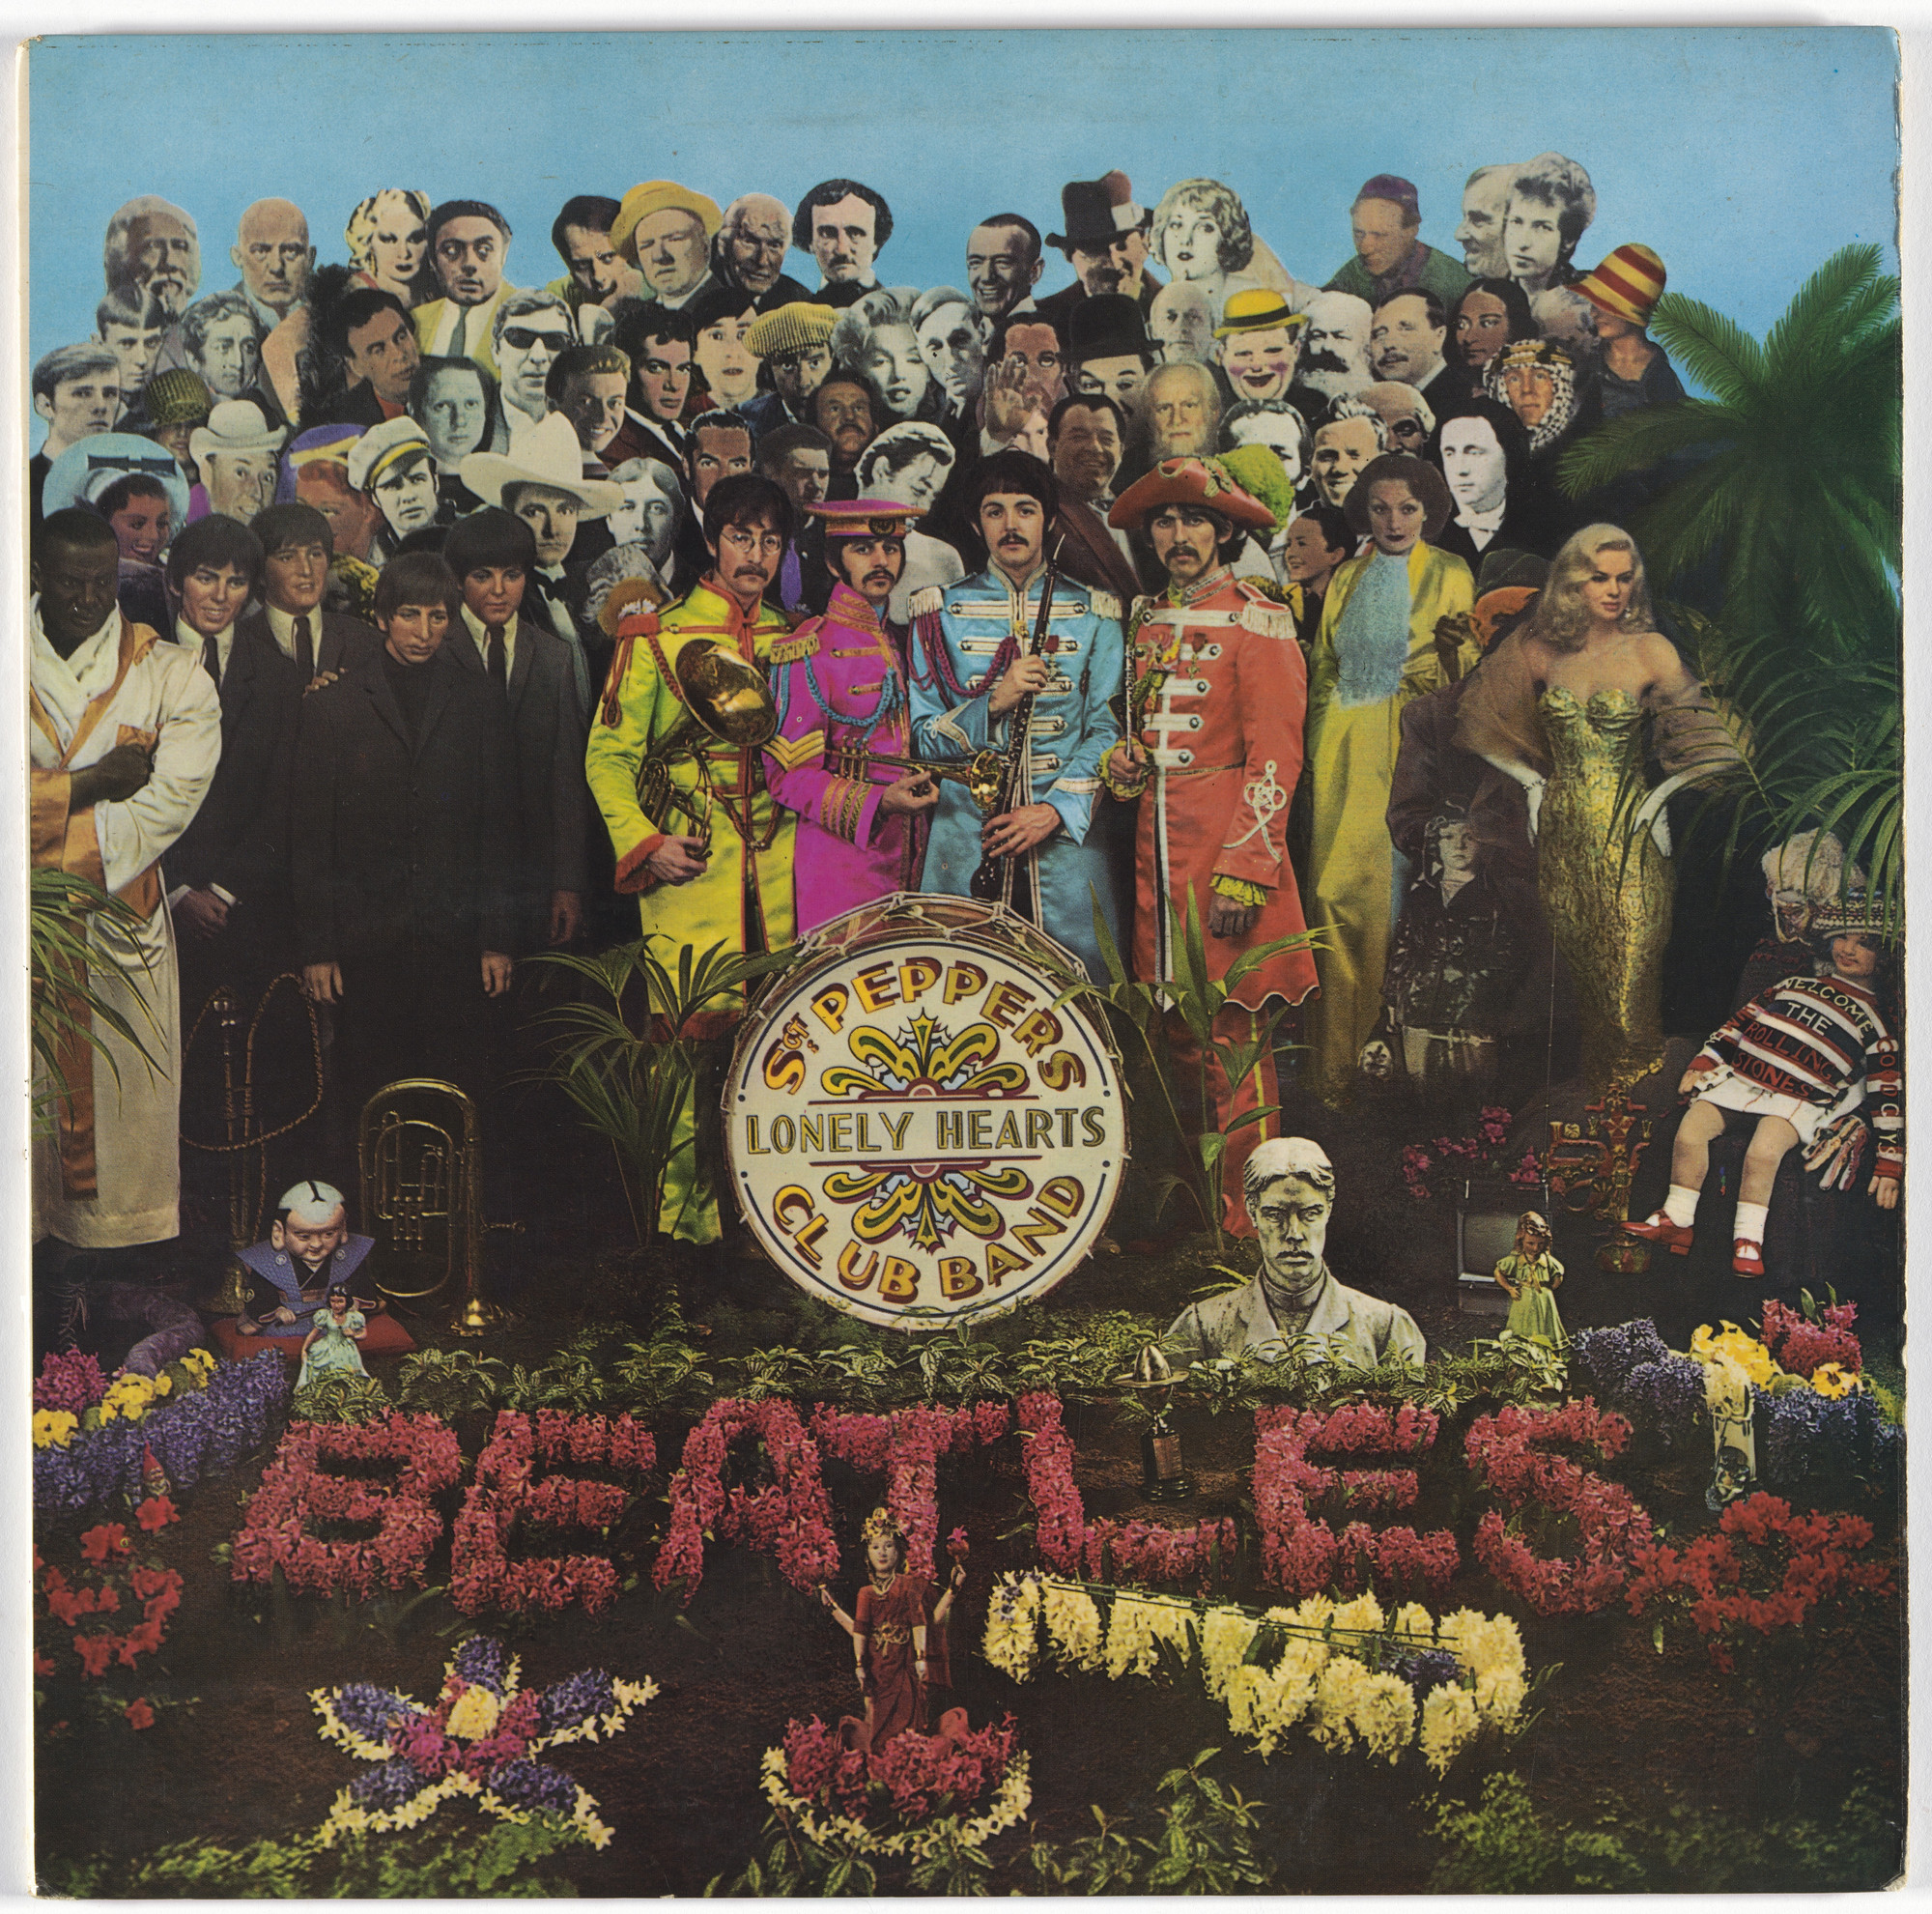 Peter Blake, Jann Haworth, Michael Cooper. Album cover for The Beatles, Sgt. Pepper's Lonely Hearts Club Band. 1967